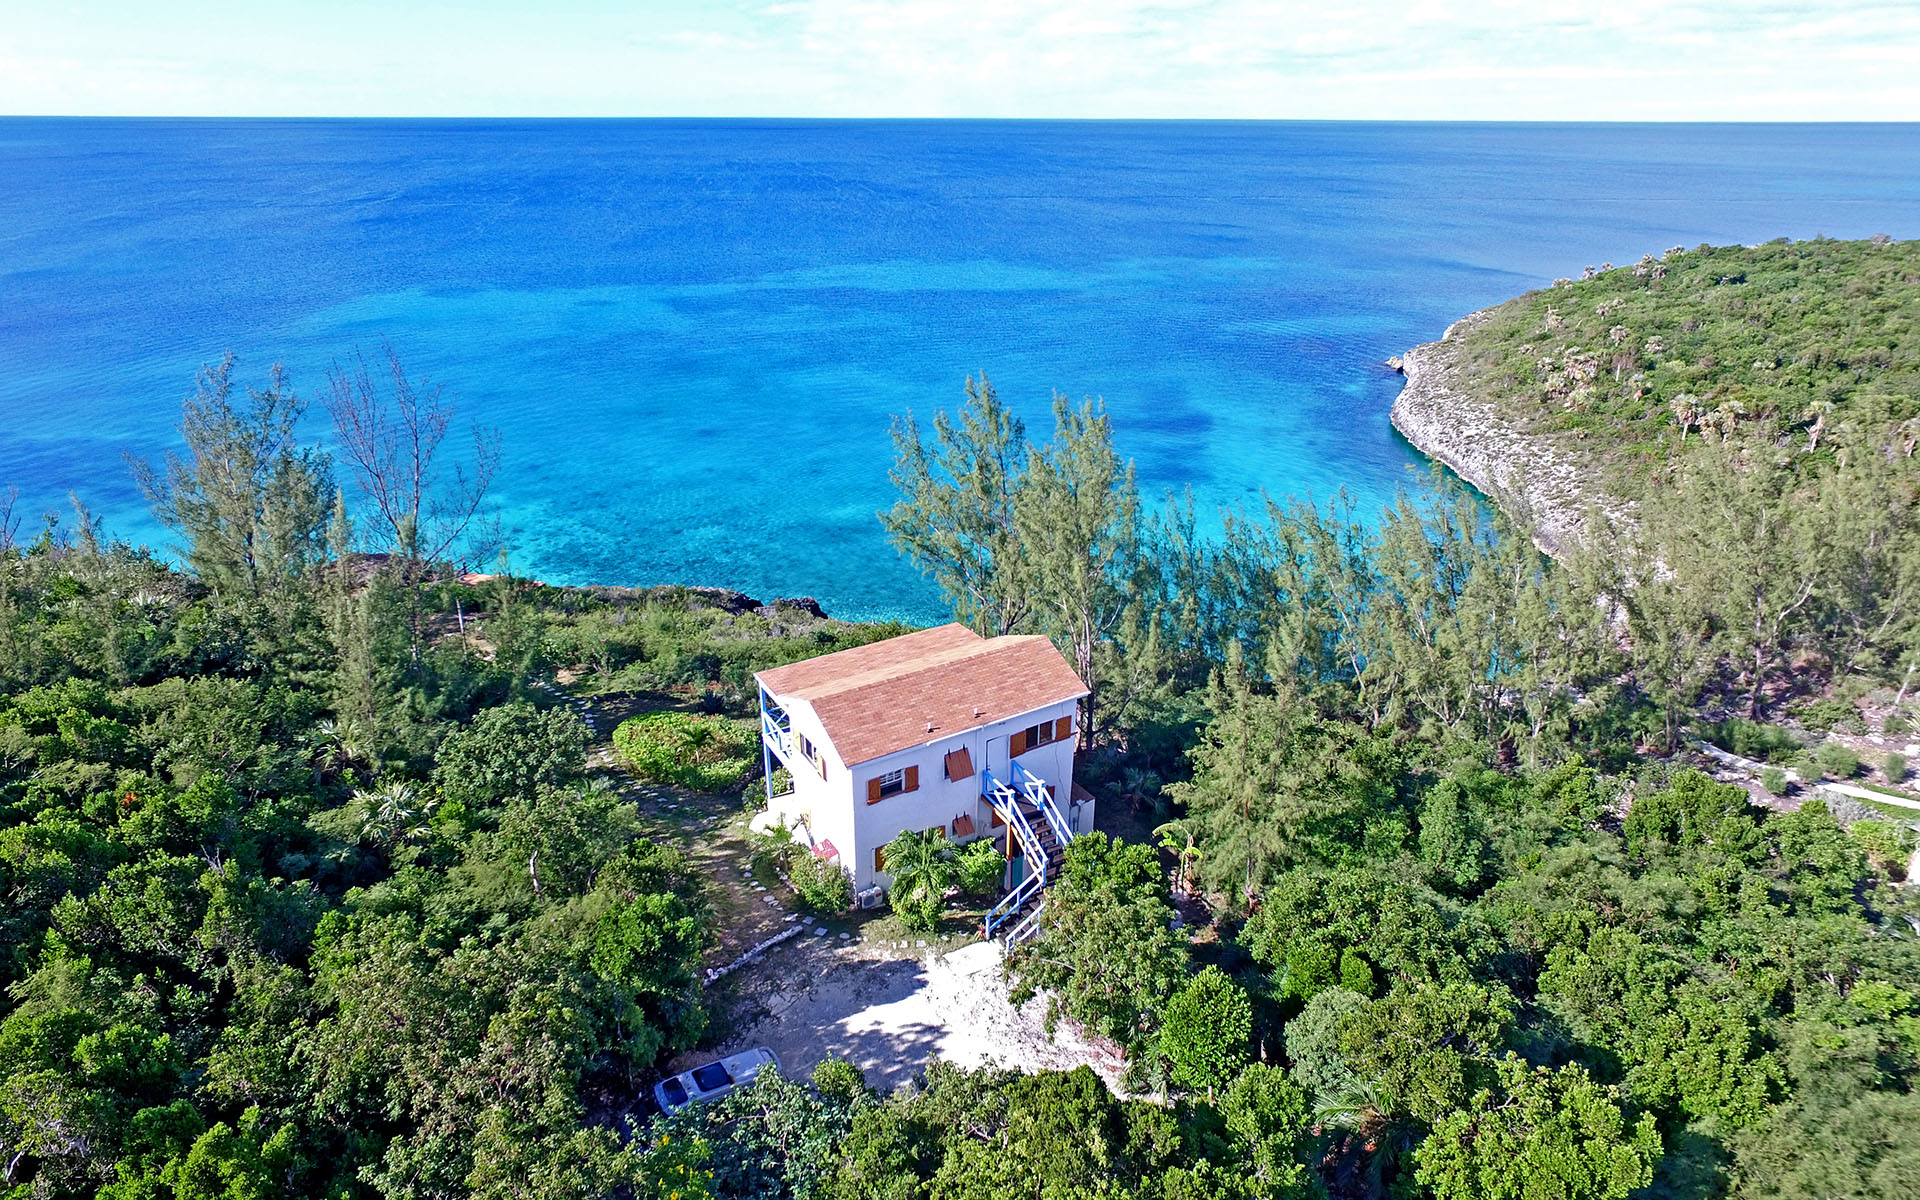 Single Family Home for Sale at Tropical Island Waterfront Villa Near Ten Bay Eleuthera / MLS 28729 Savannah Sound, Eleuthera, Bahamas